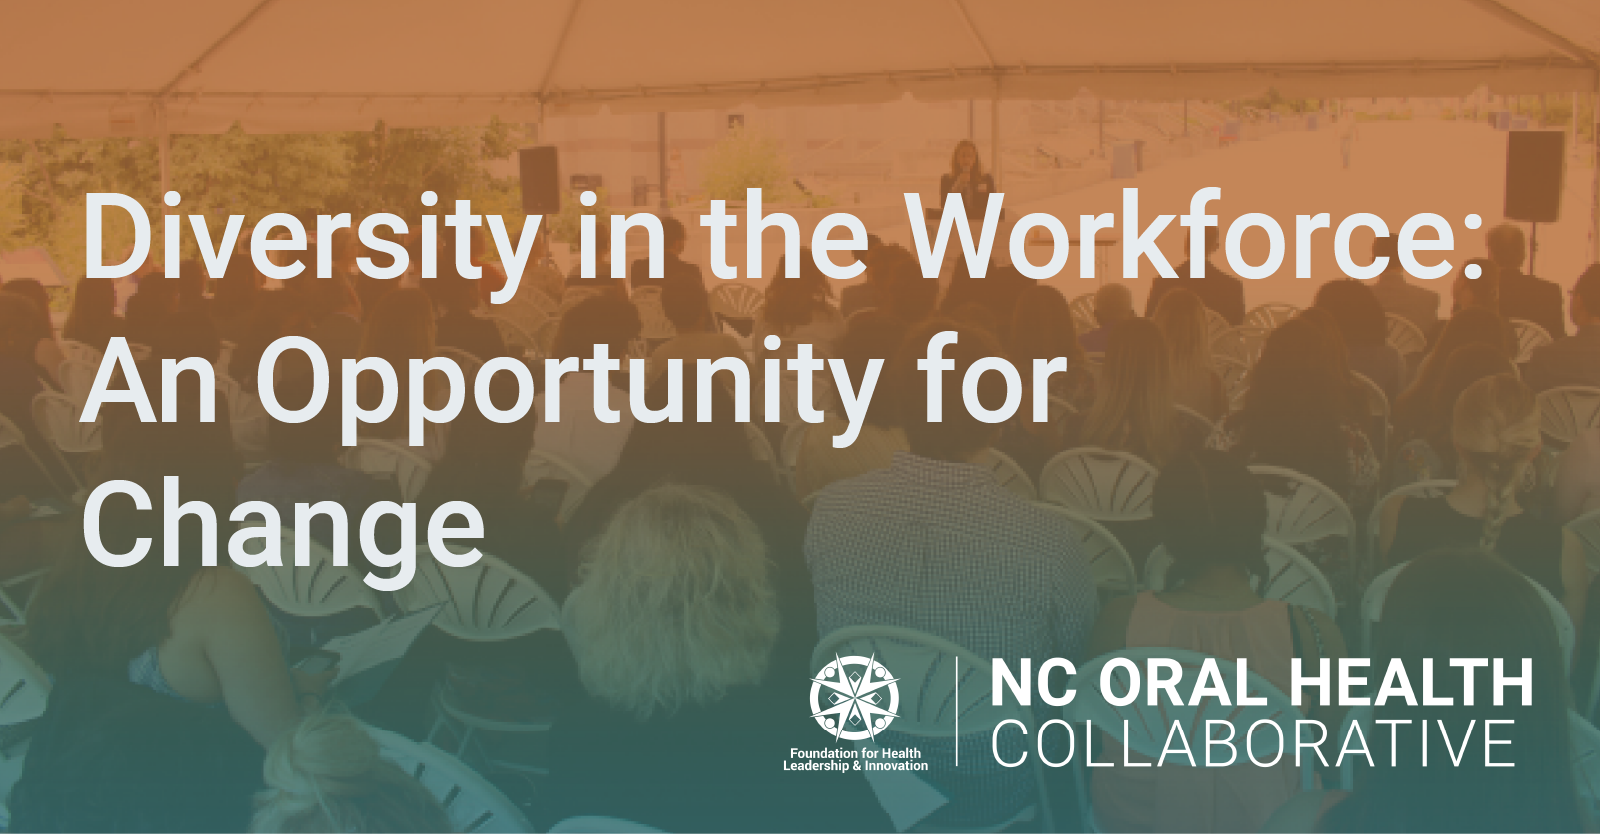 Diversity in the Workforce: An Opportunity for Change